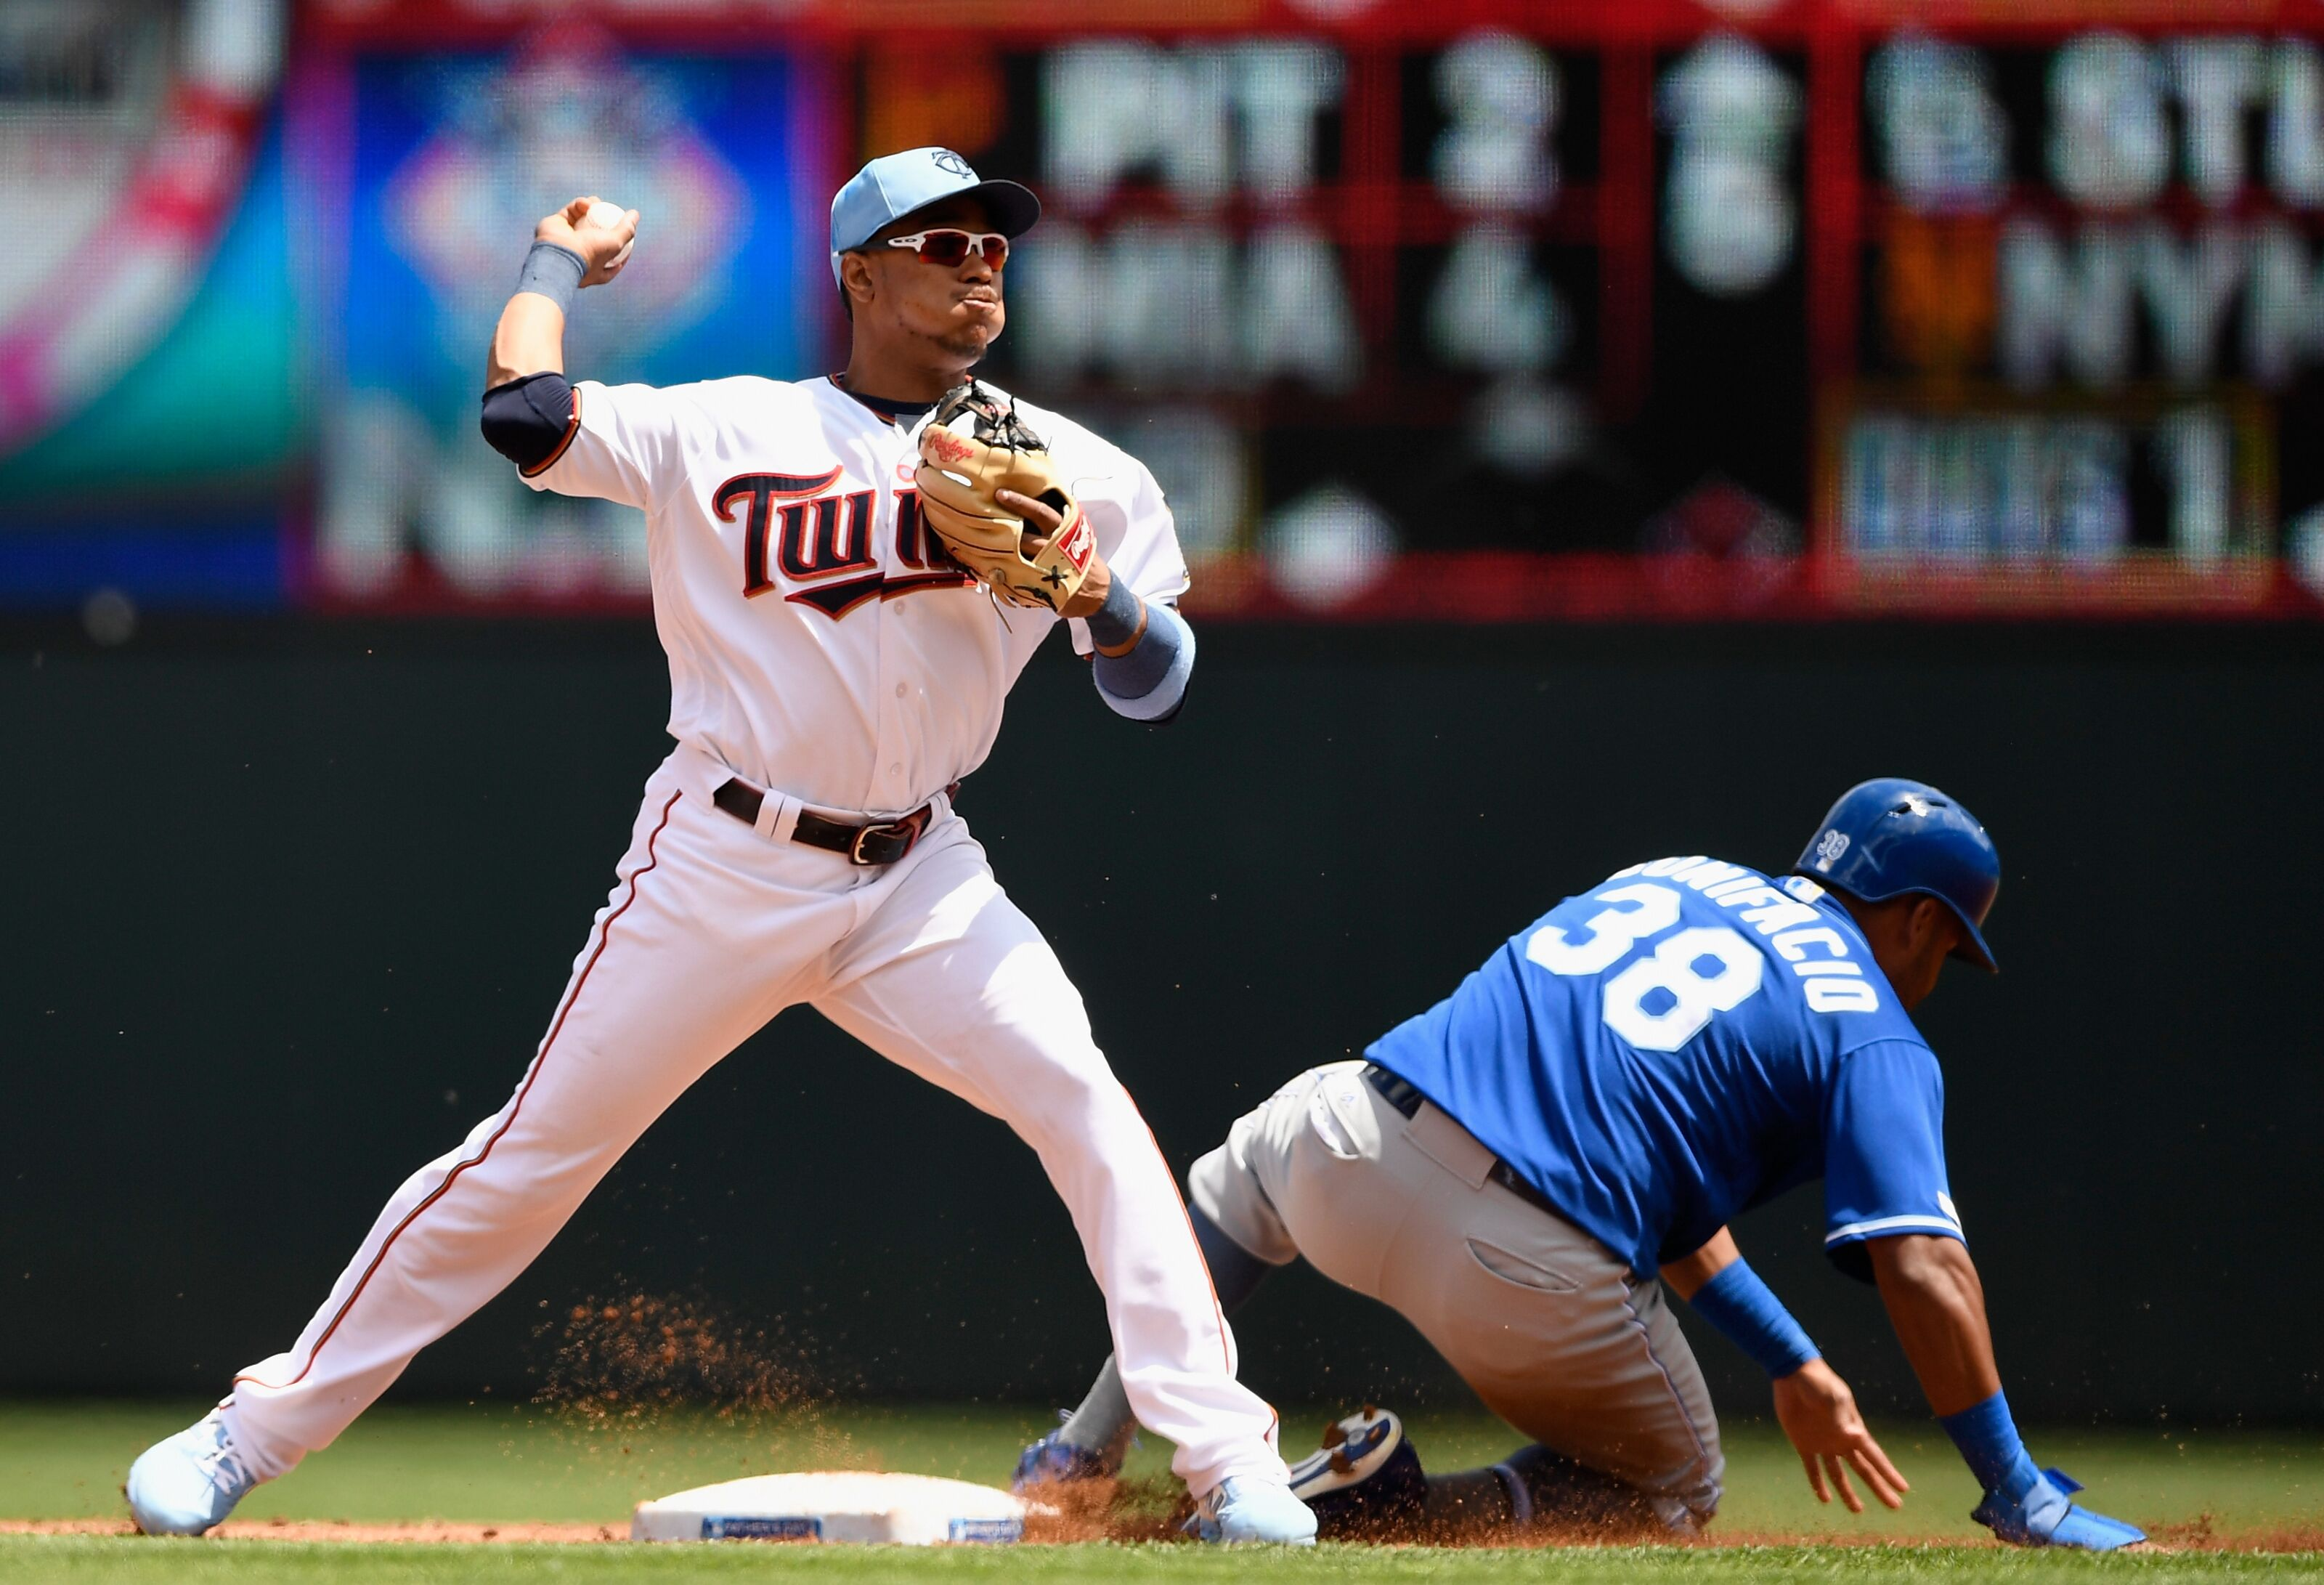 Minnesota Twins Postgame Report: Twins can't get big hit in loss to Royals